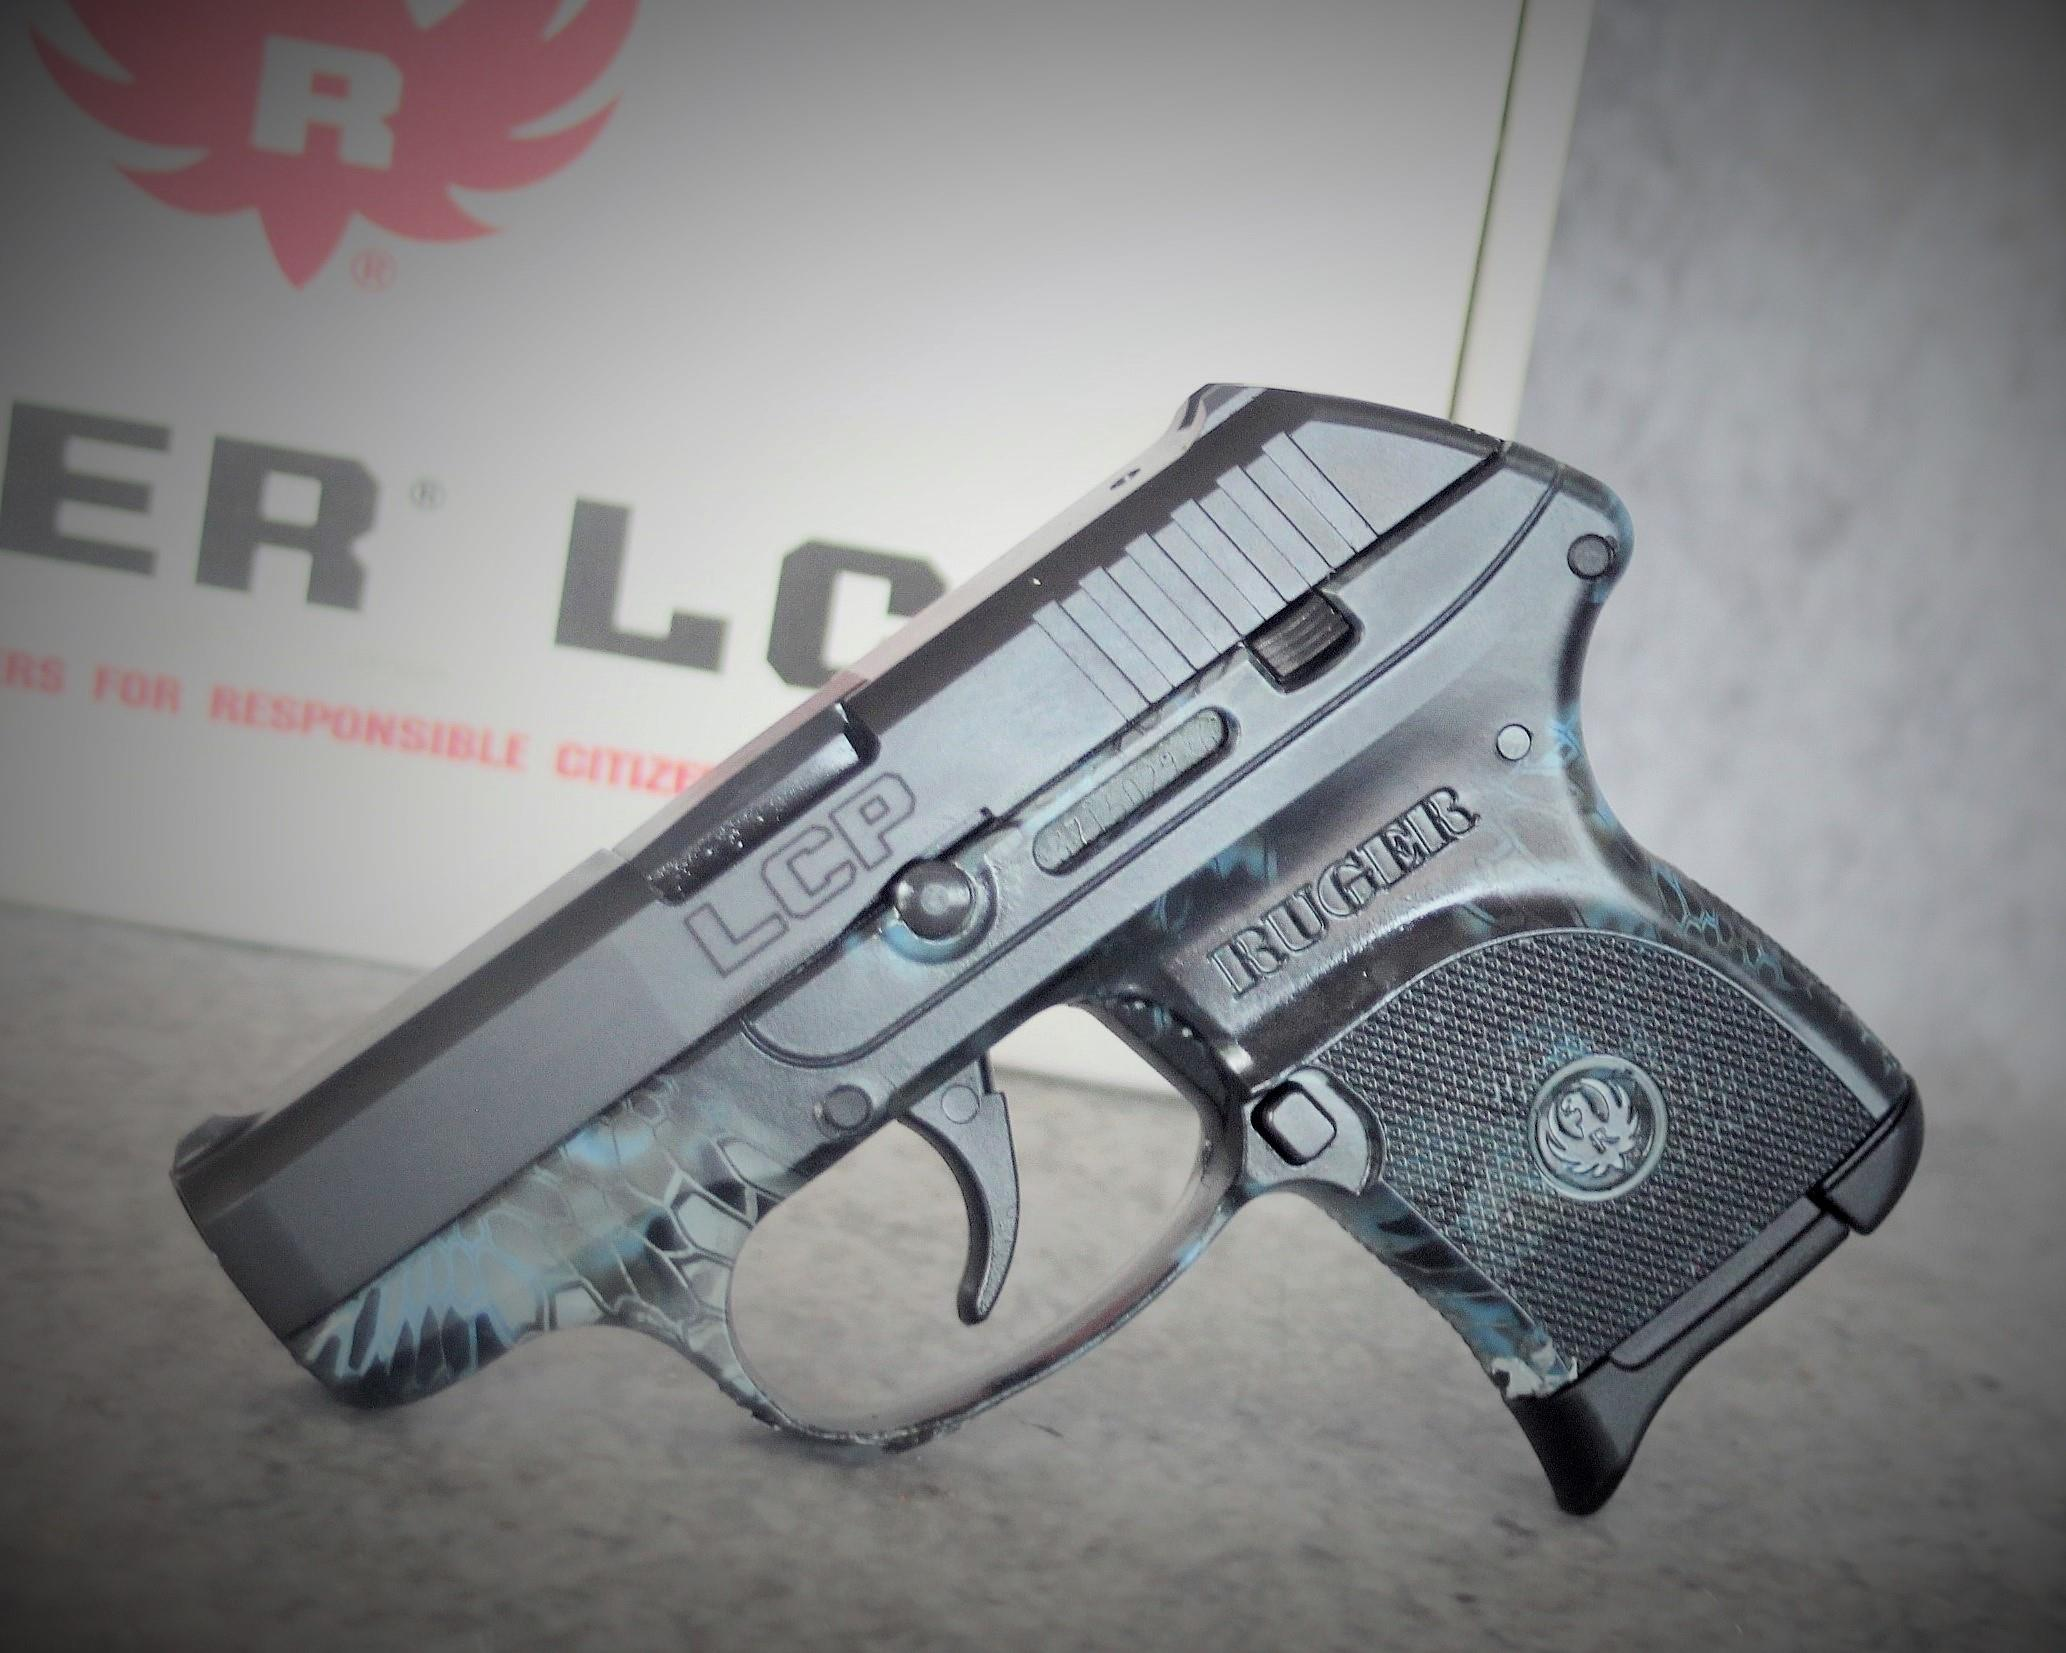 $30 EASY PAY  Exclusive  RUGER  LCP  Camo KRYPTEK NEPTUNE Compact Model Conceal and Carry   Soft Case   Pocket Pistol Or Backup Carry camouflage Lightweight DAO Pistol Blue Fixed  Sights  3743  NIB  .380ACP  Guns > Pistols > Ruger Semi-Auto Pistols > LCP